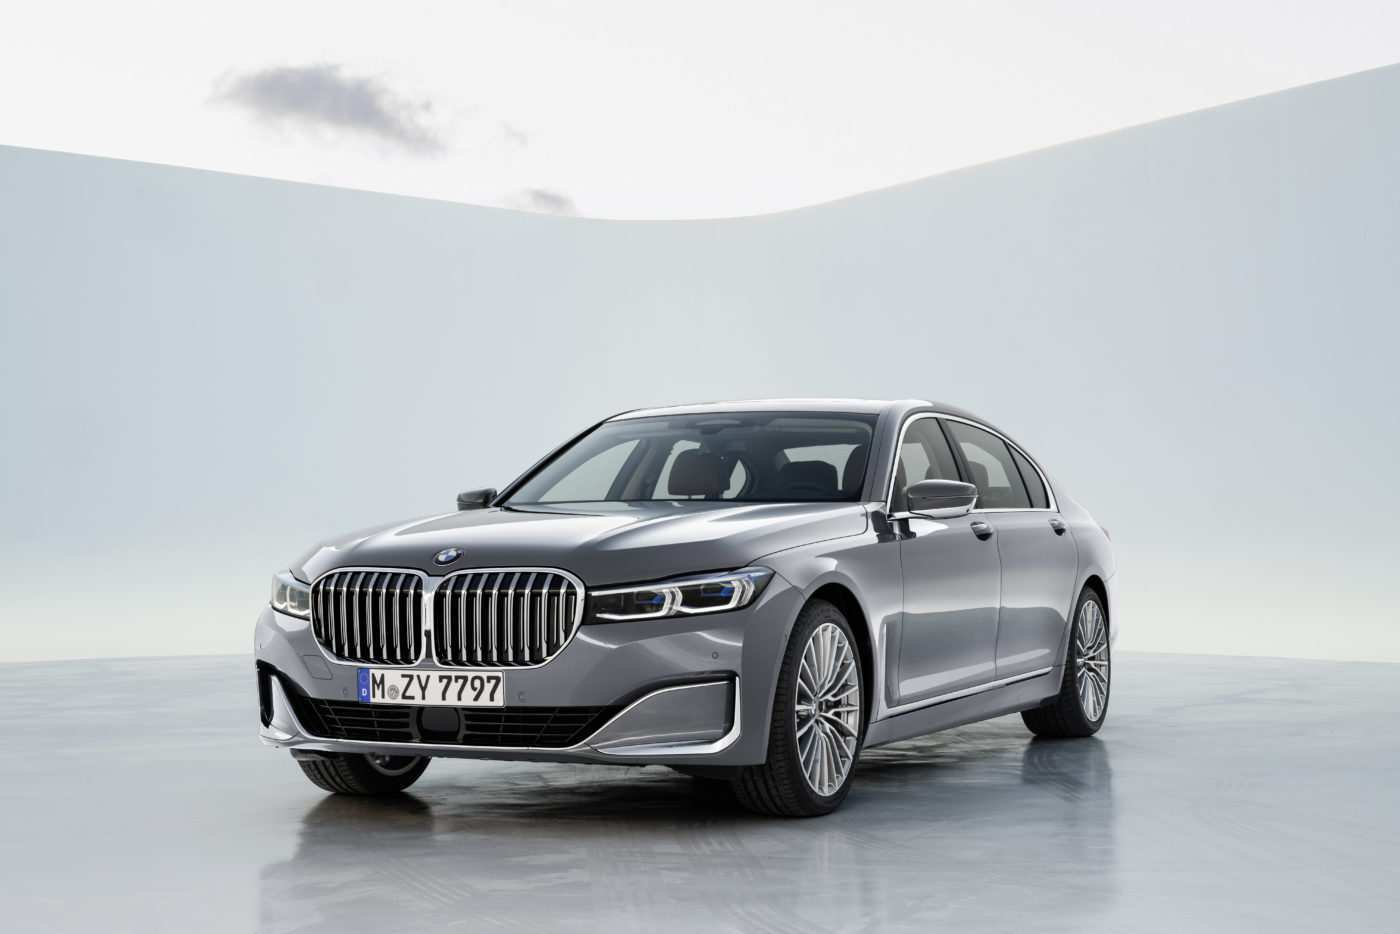 79 The Best 2020 BMW 7 Series Order Guide First Drive